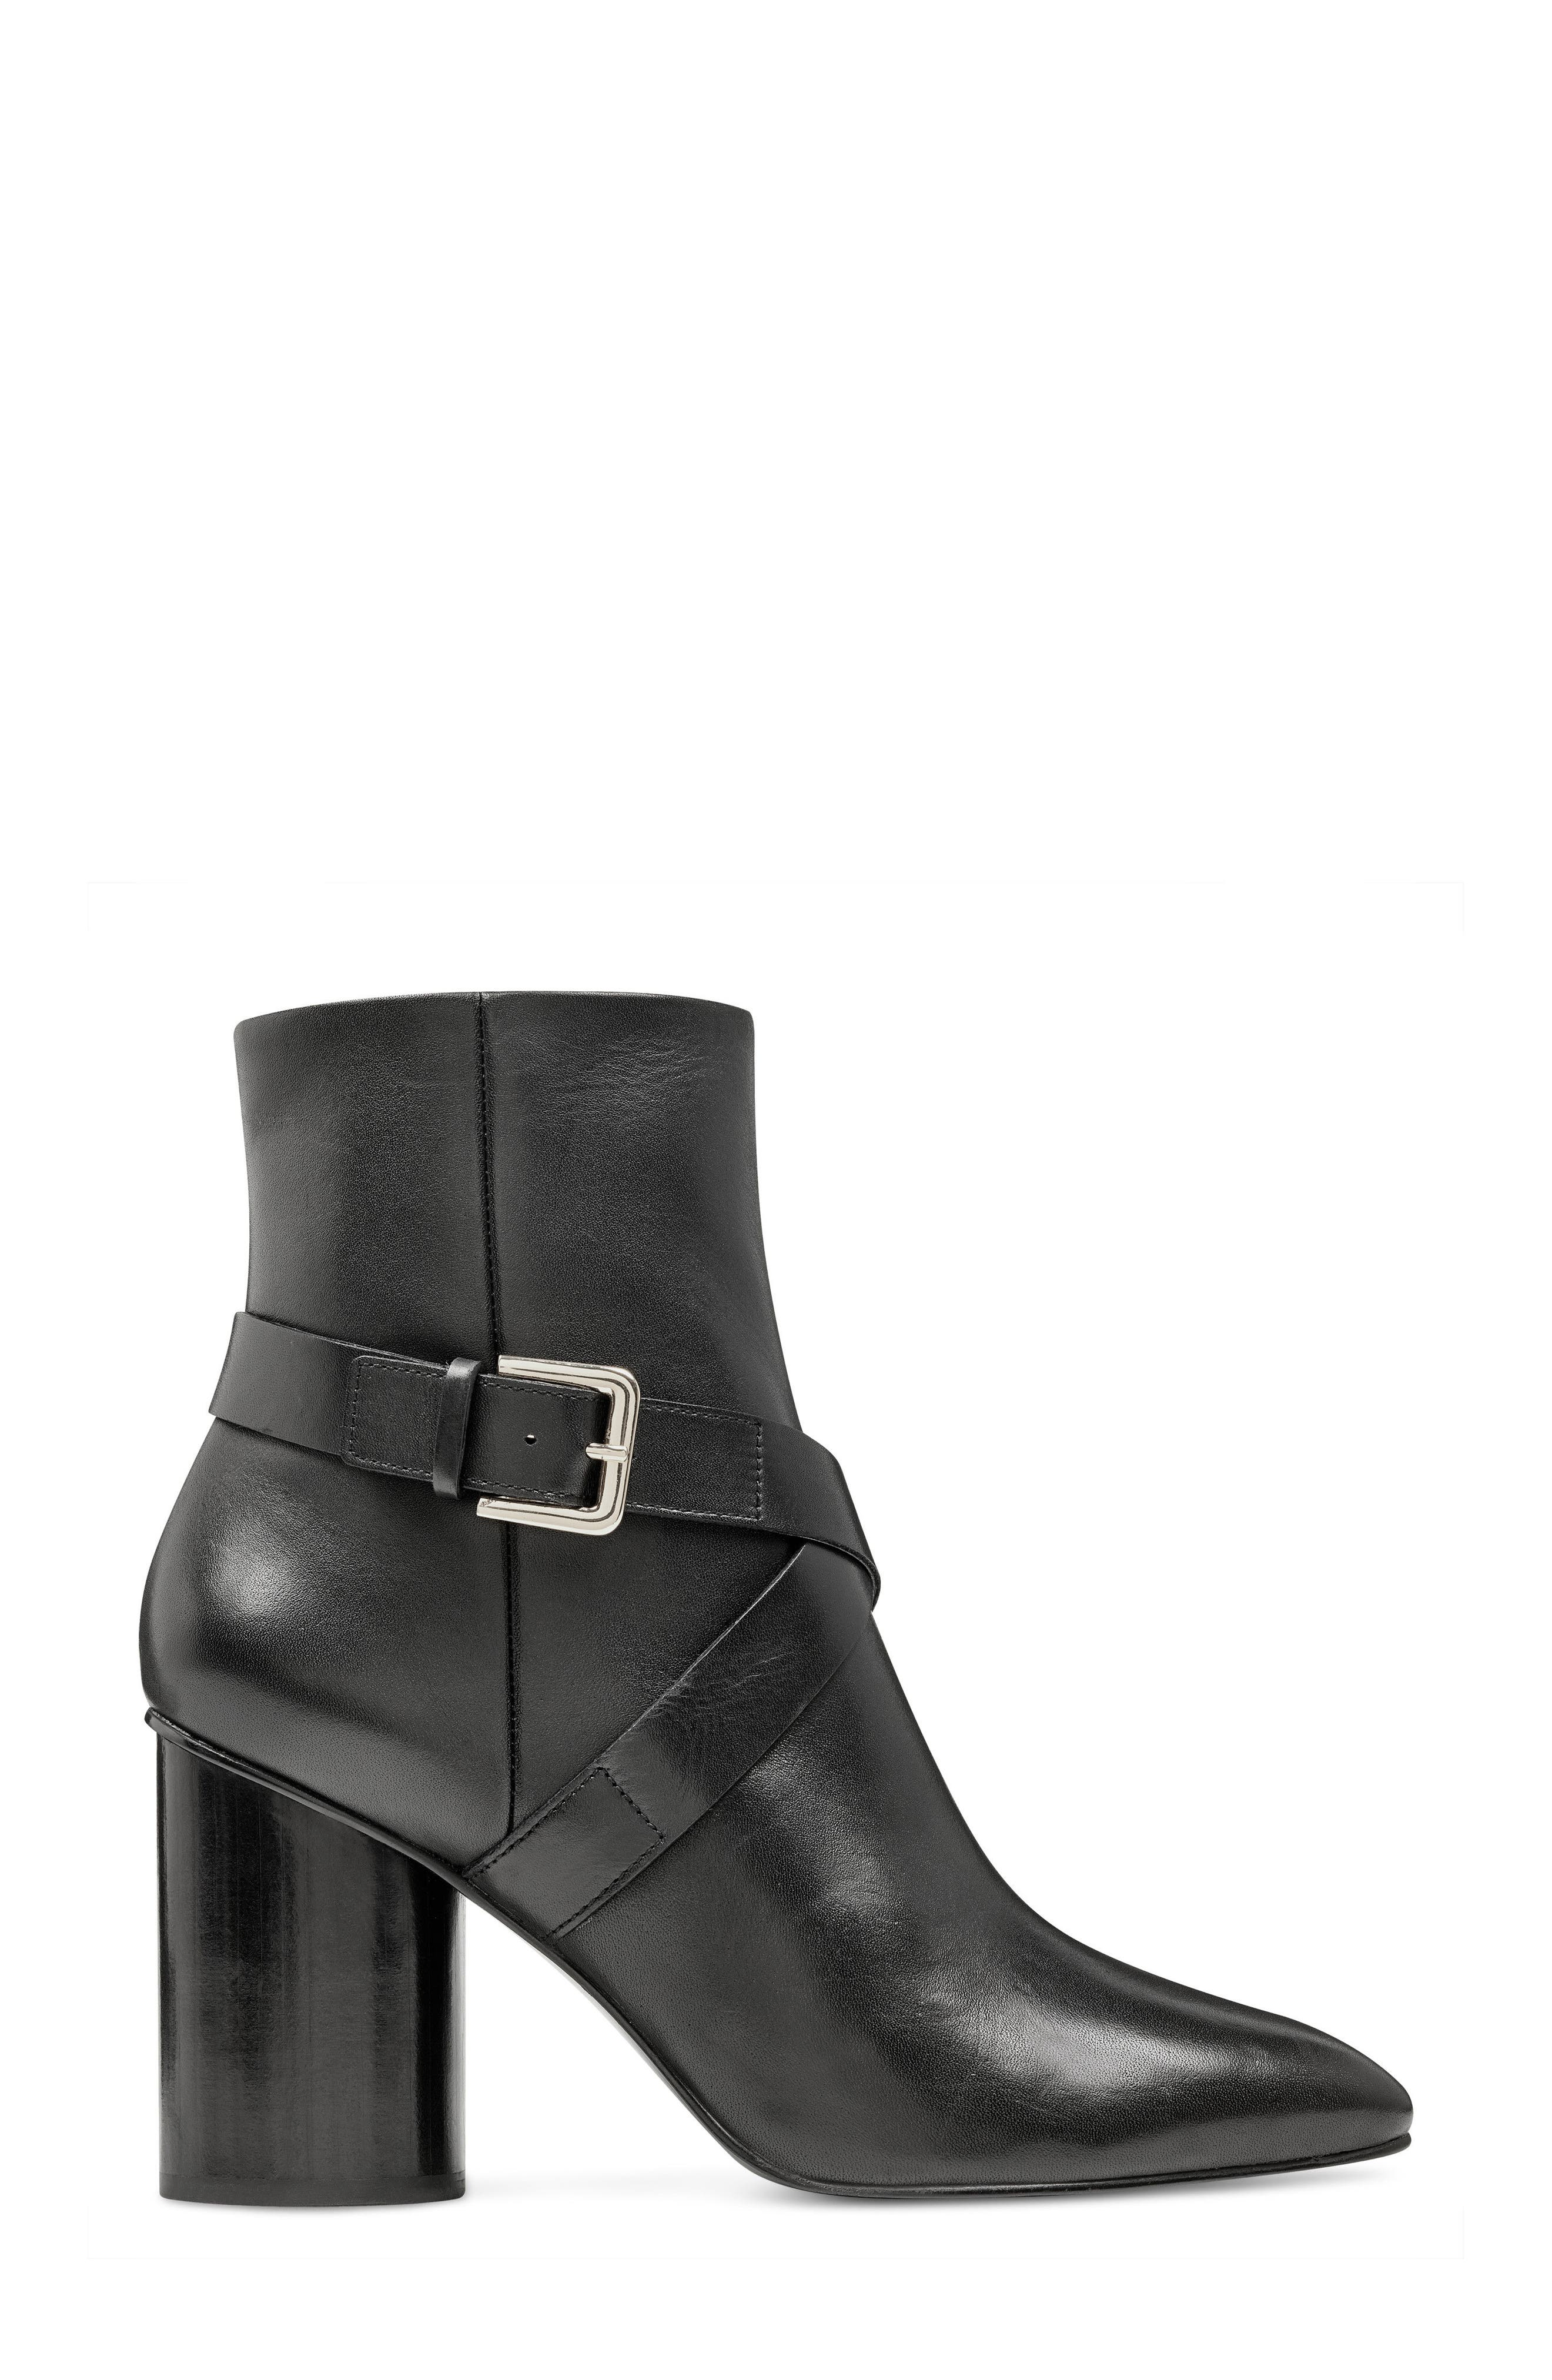 Cavanagh Pointy Toe Bootie,                             Alternate thumbnail 3, color,                             001